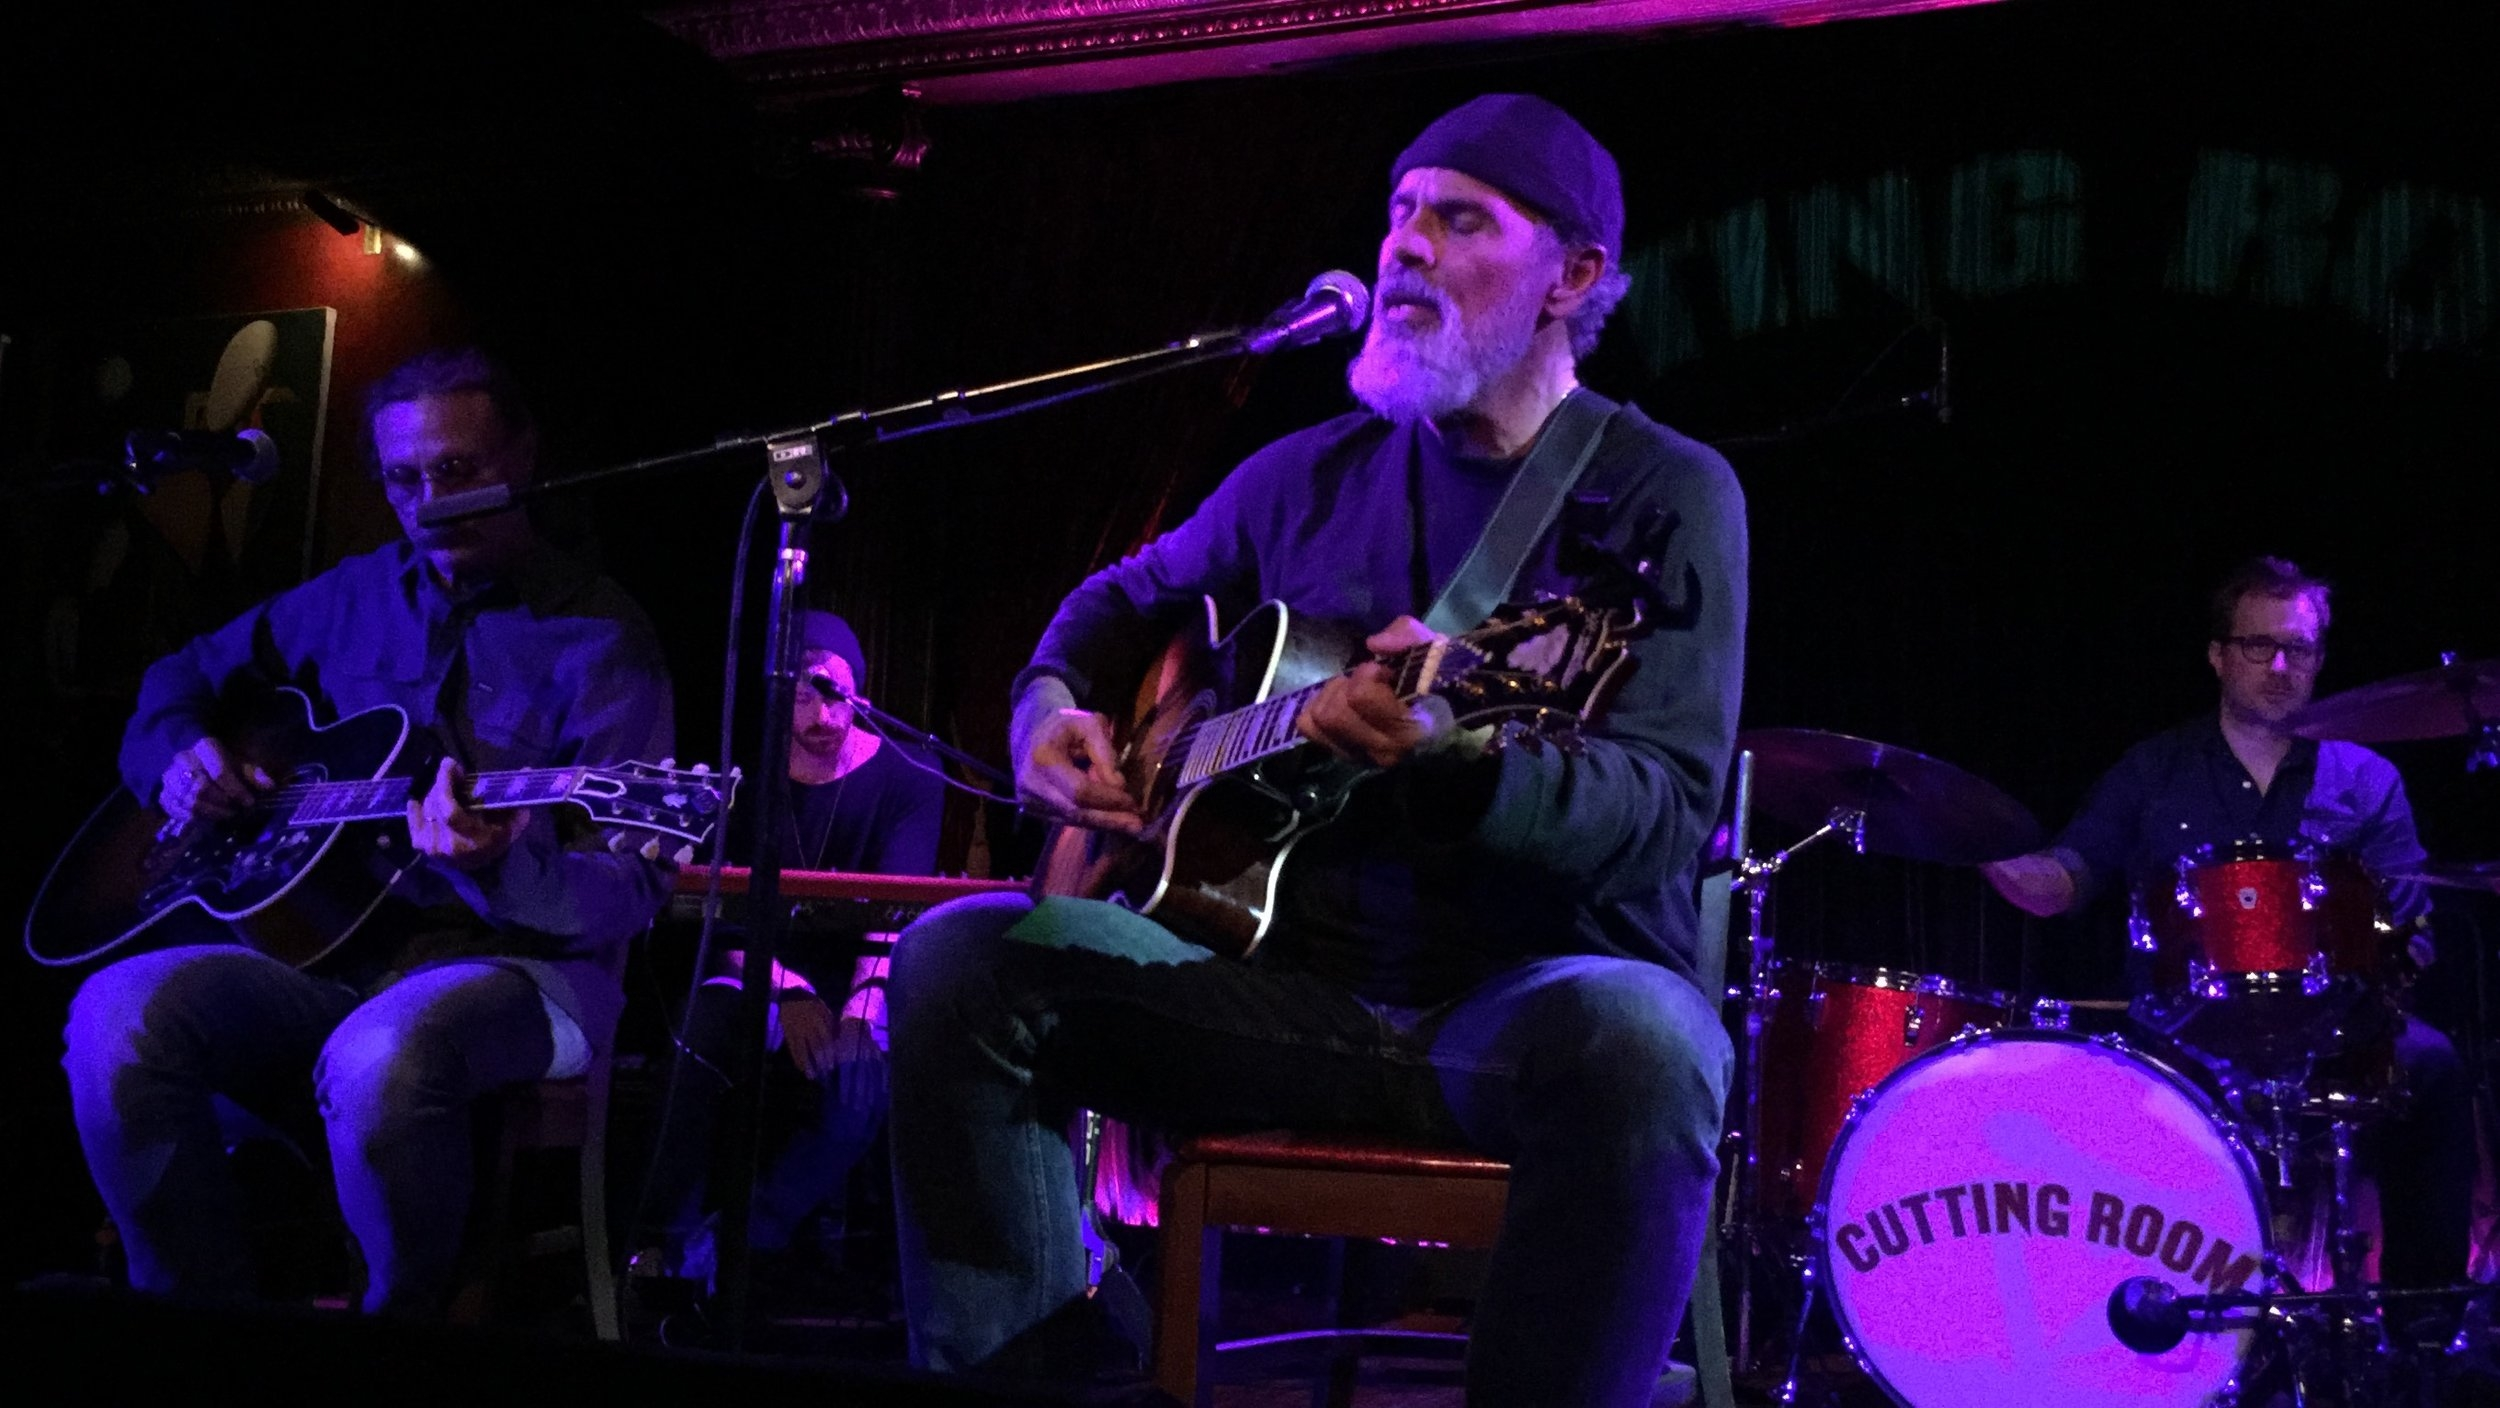 Bruce Sudano on stage at The Cutting Room.